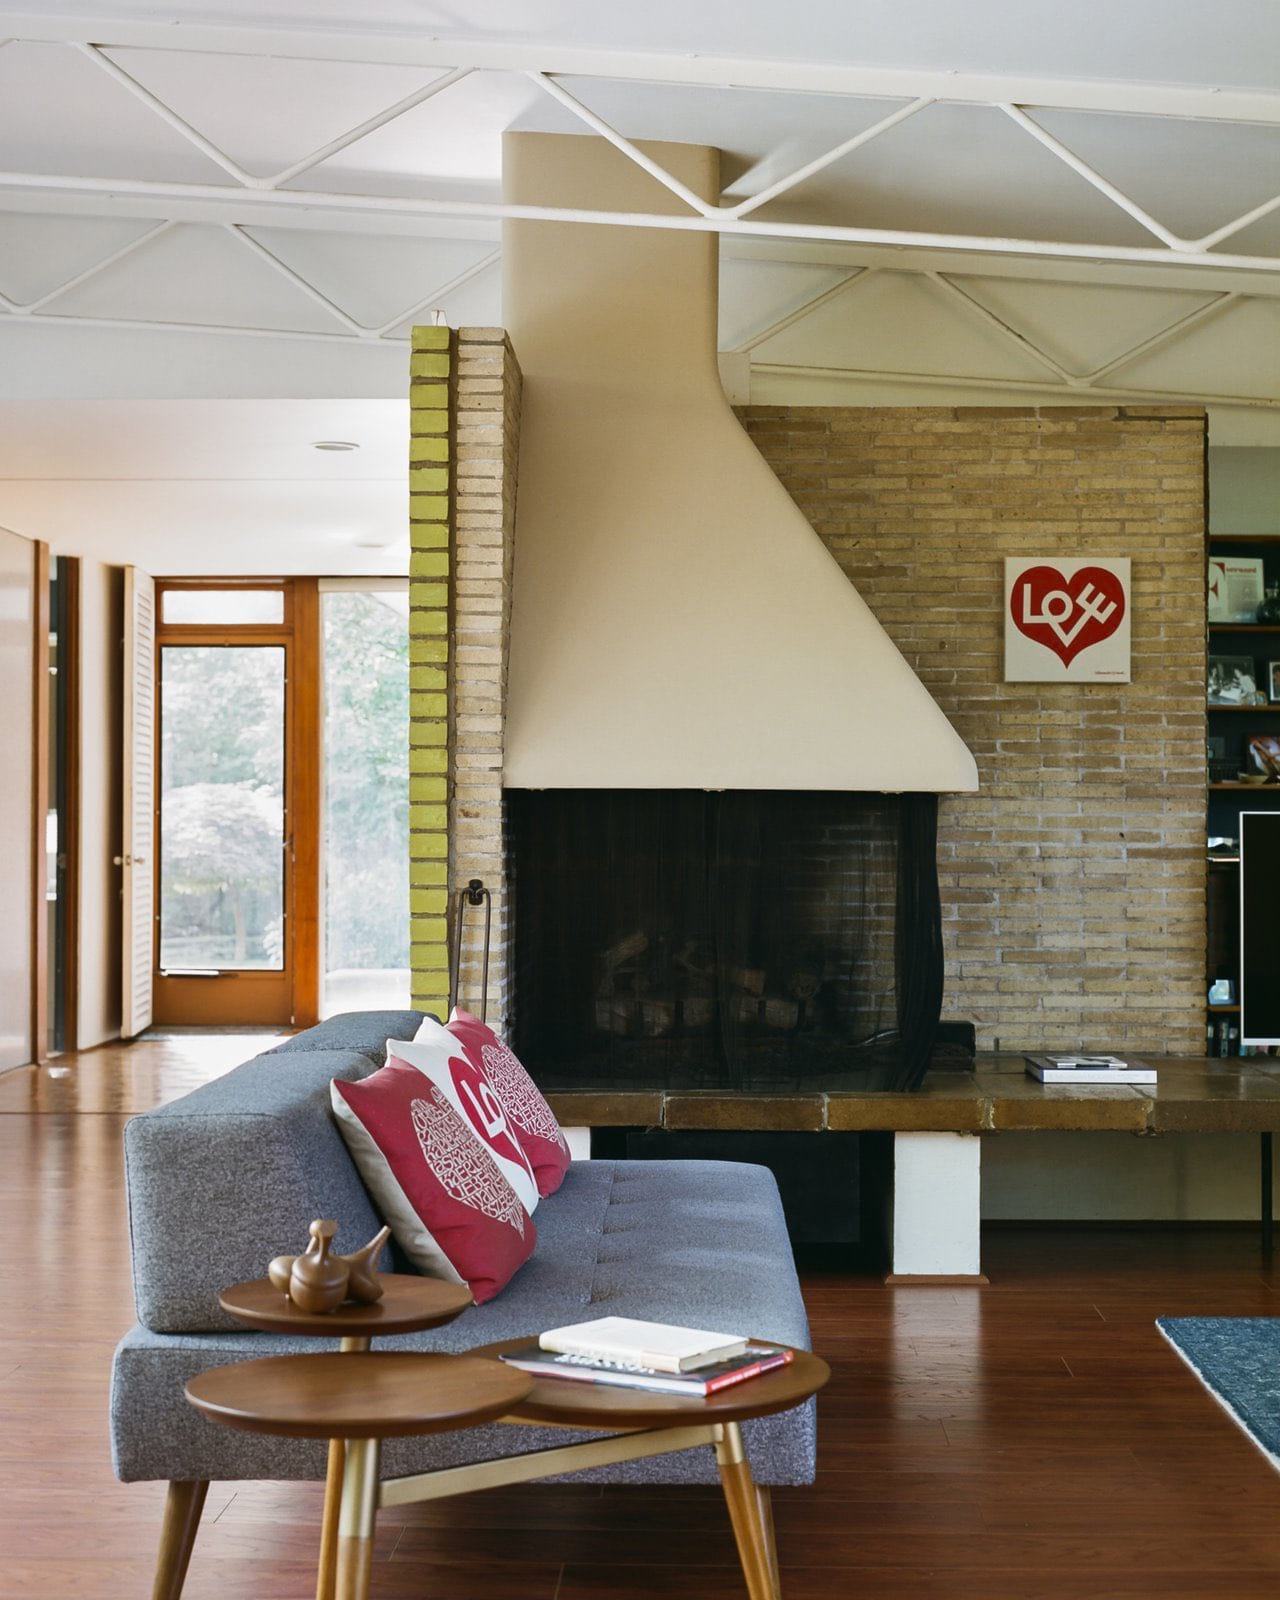 Alexander Girard residence In Michigan - living room Fireplace